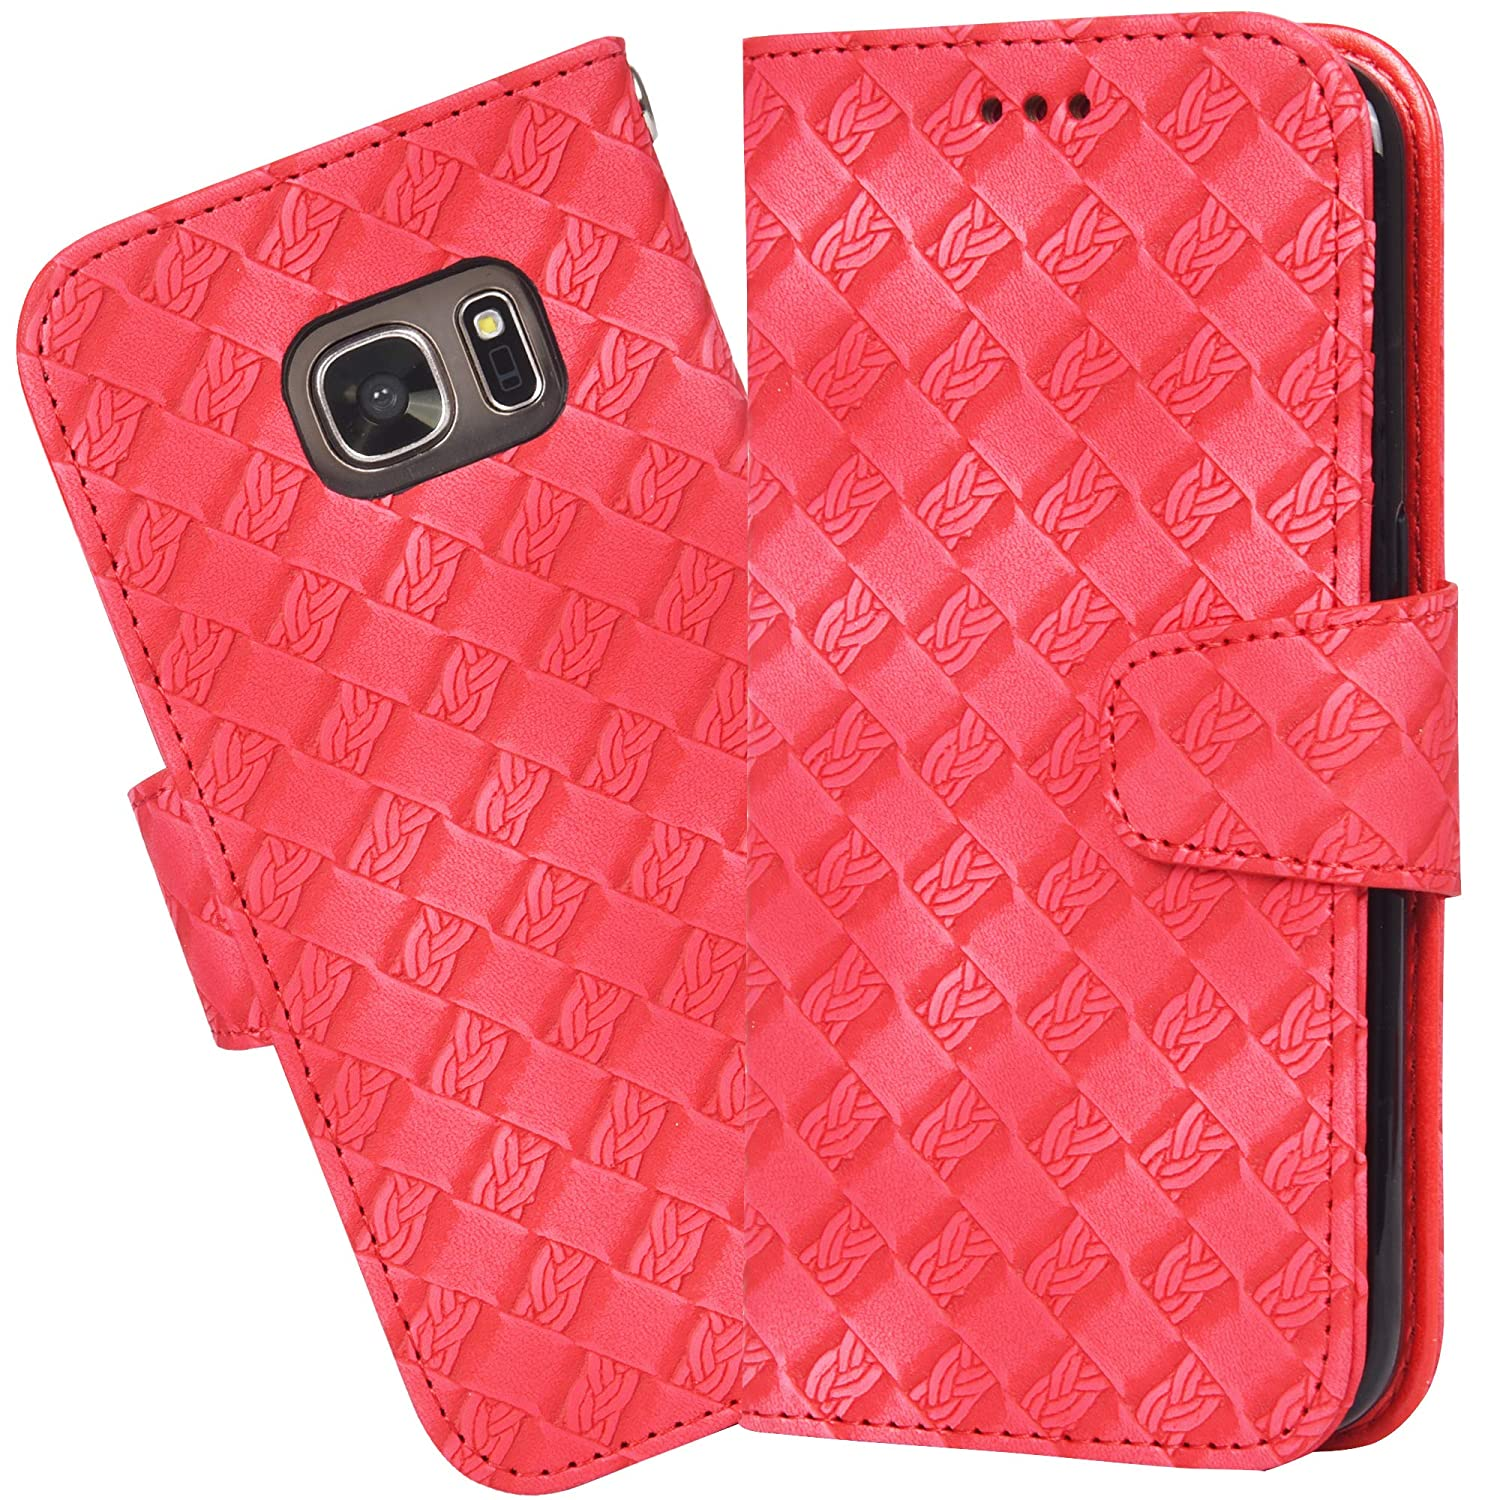 Rosegold Flip Folio Galaxy s7 Case PU Leather Wallet case with ID/&Credit Card Pockets for Samsung Galaxy S7 Kickstand Feature Wrist Strap Arae